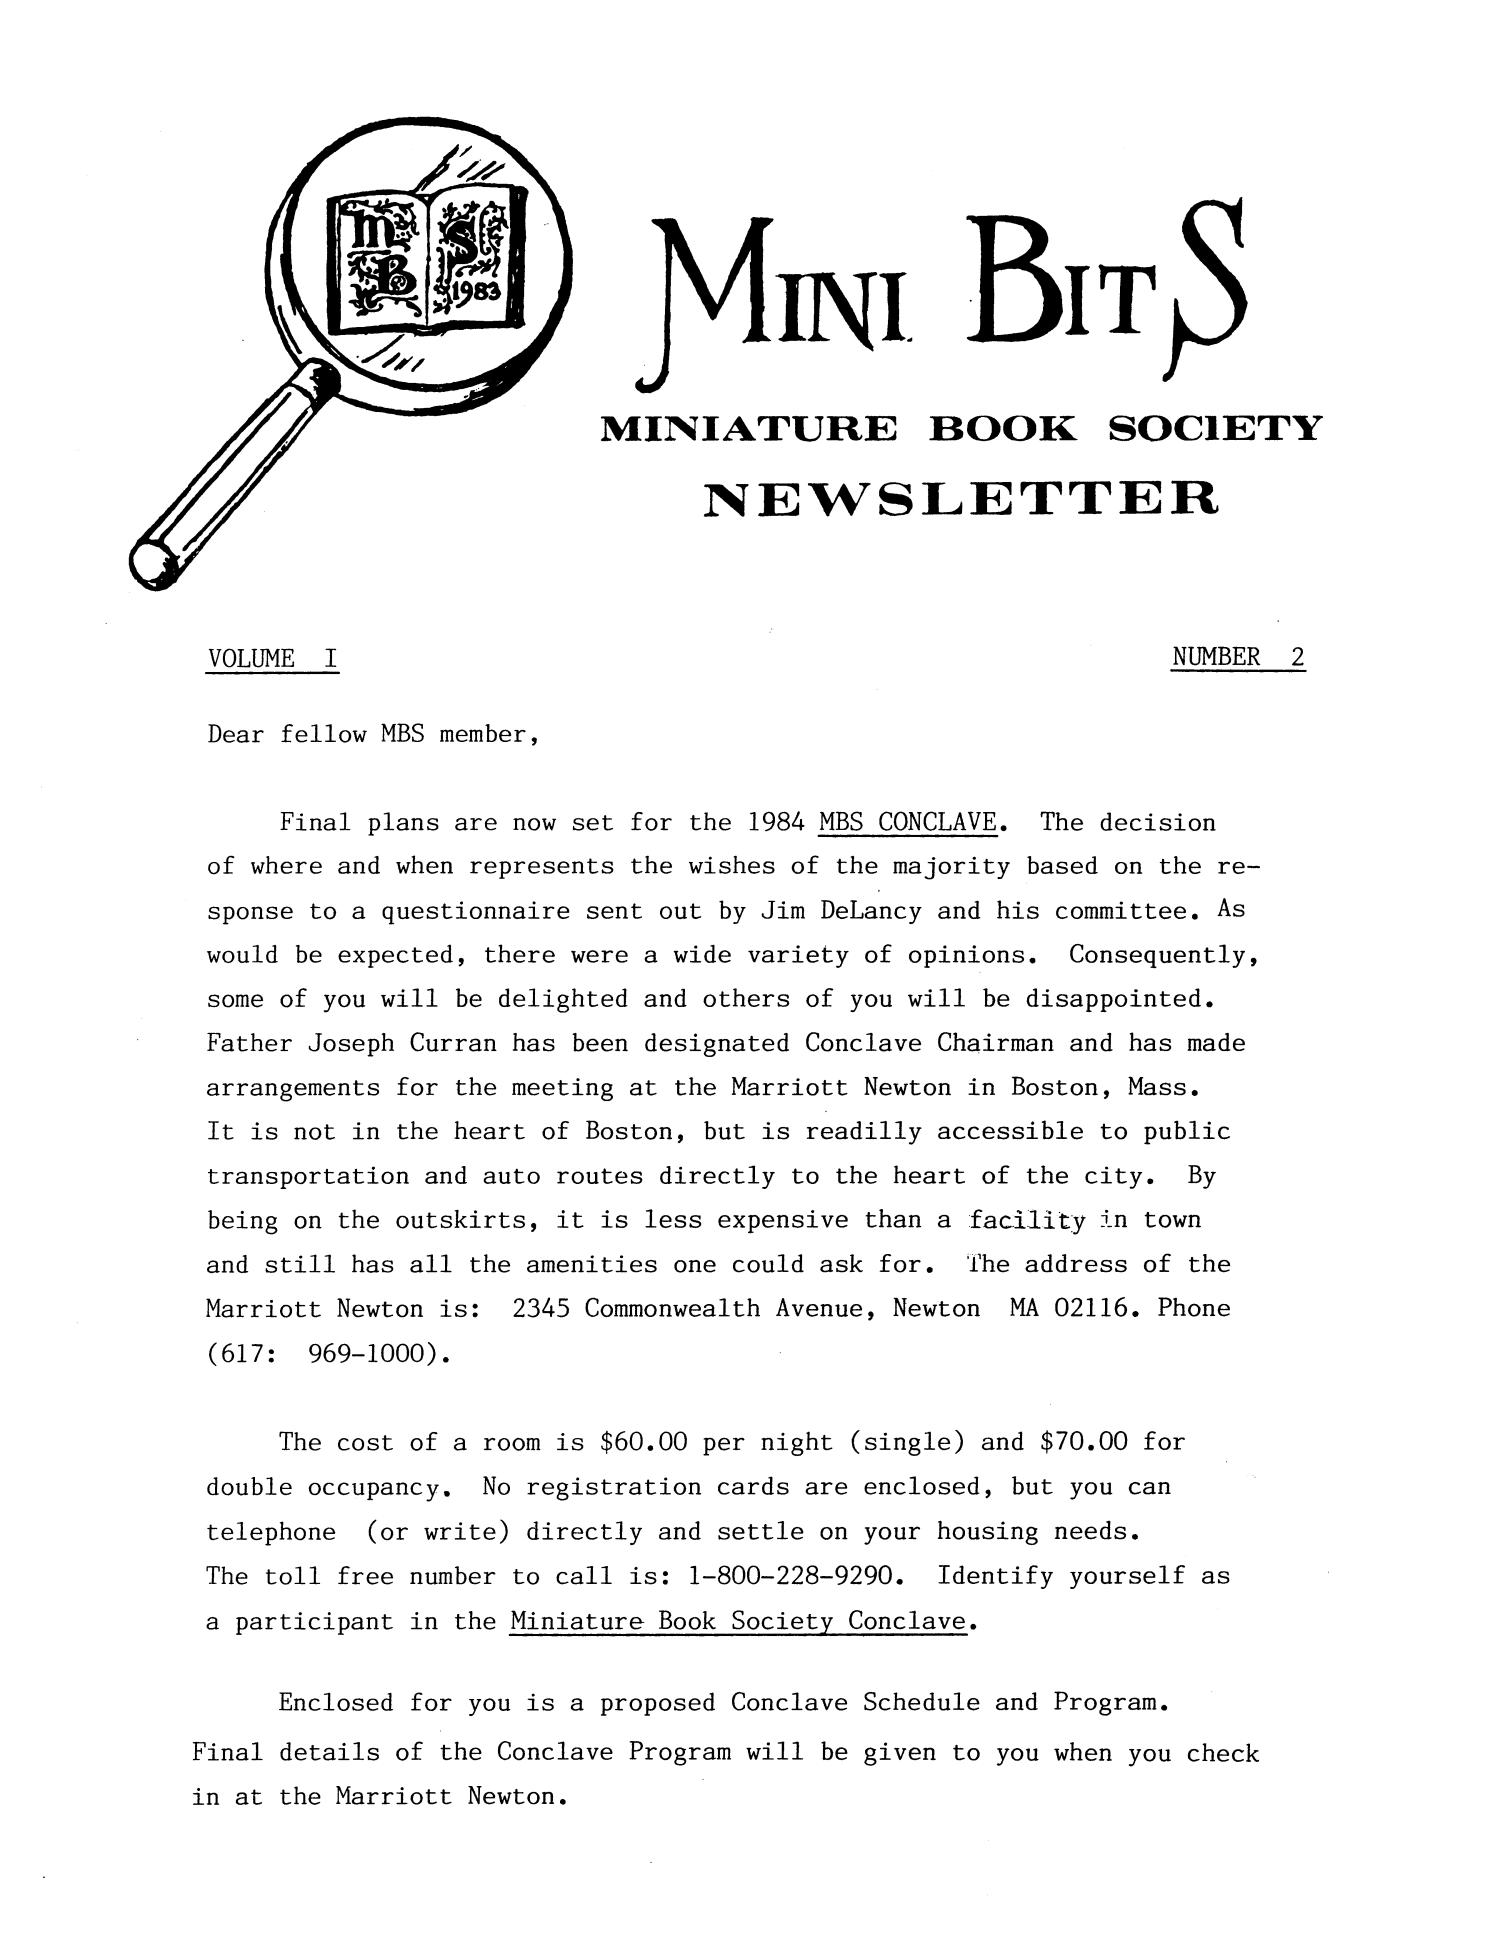 Miniature Book Society Newsletter 1984 March                                                                                                      1